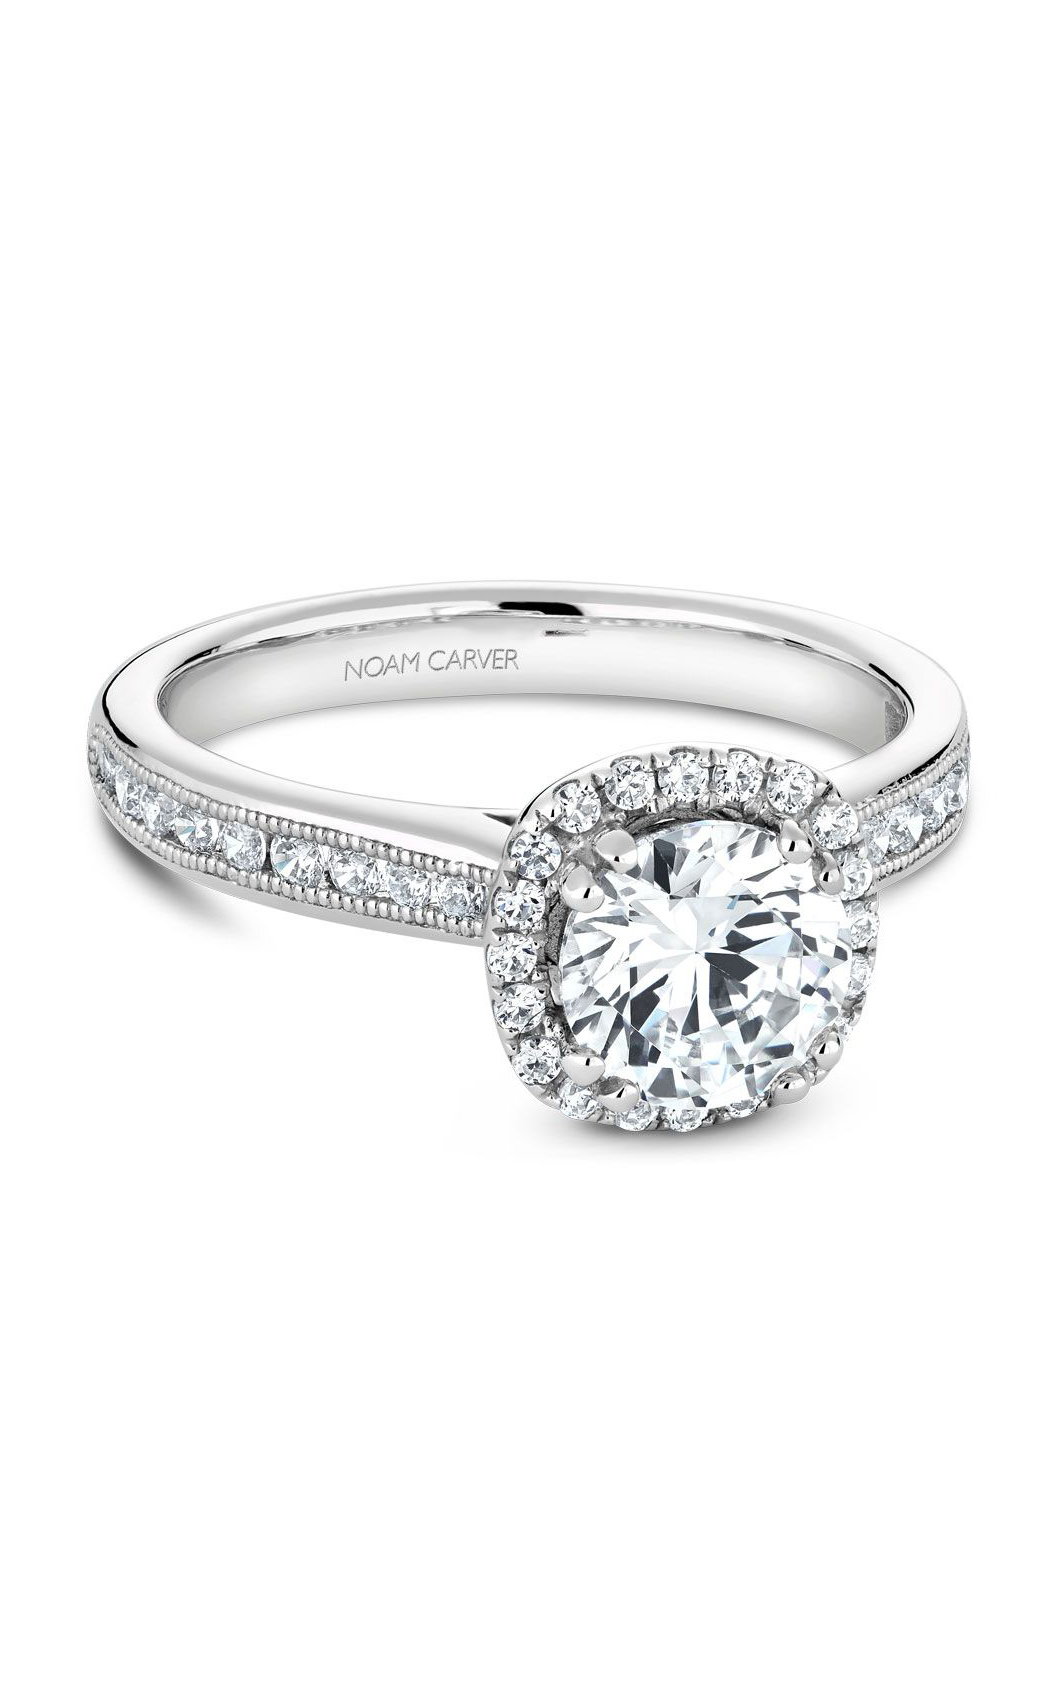 Noam Carver Classic Engagement Ring B145-06A product image